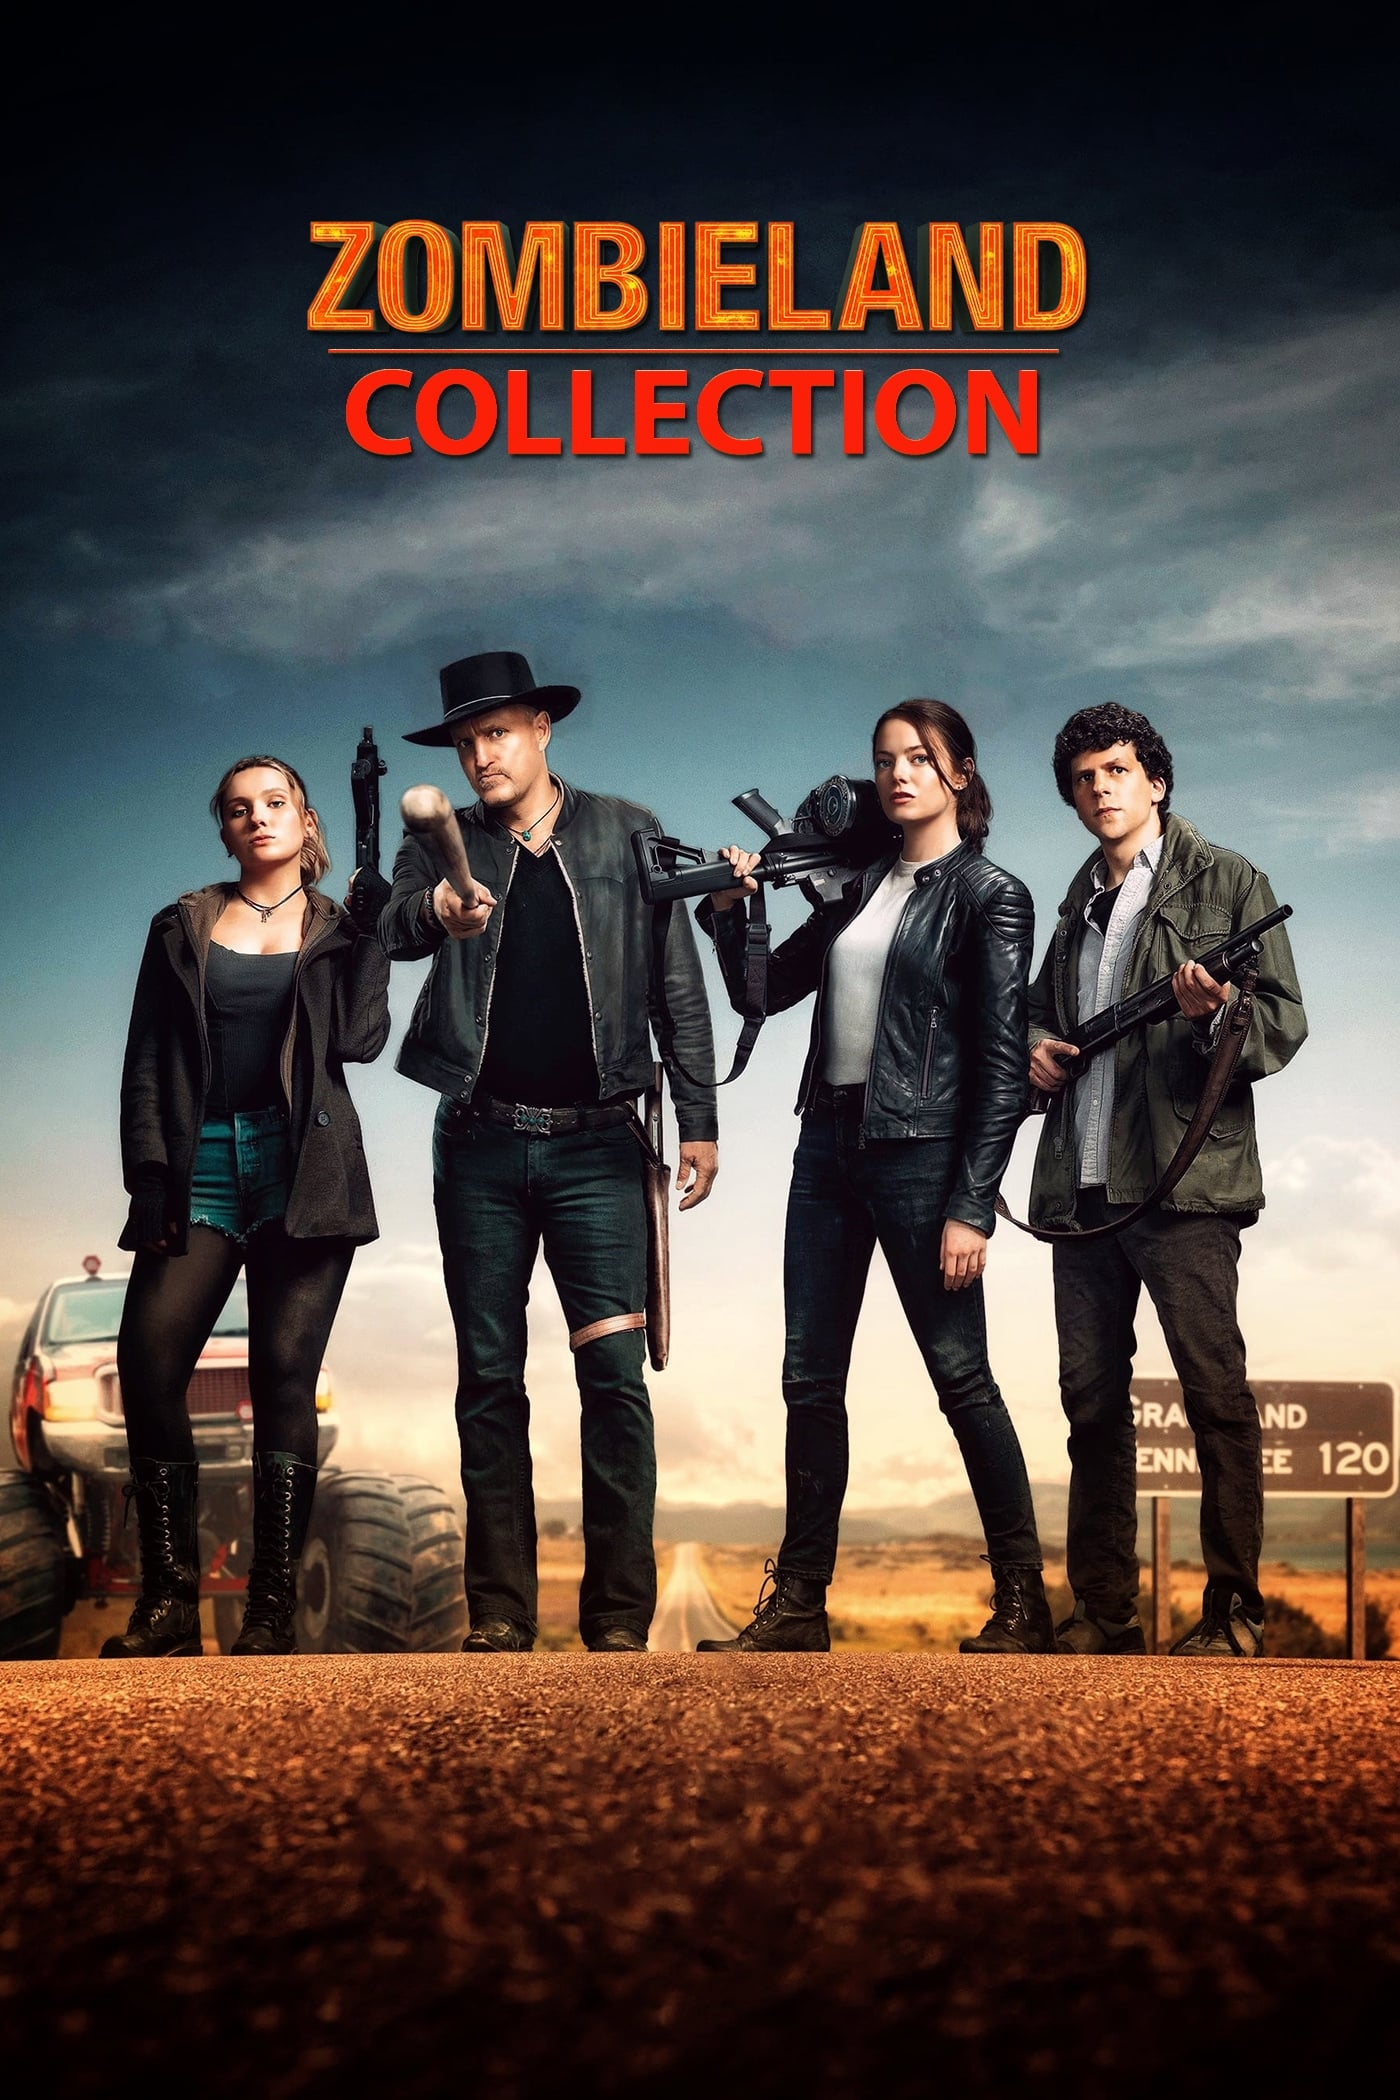 Zombieland Collection 2009-2019 BluRay 1080p 720p 480p Dual Audio [Hindi DD 5.1 + English DTS 5.1] | G-Drive